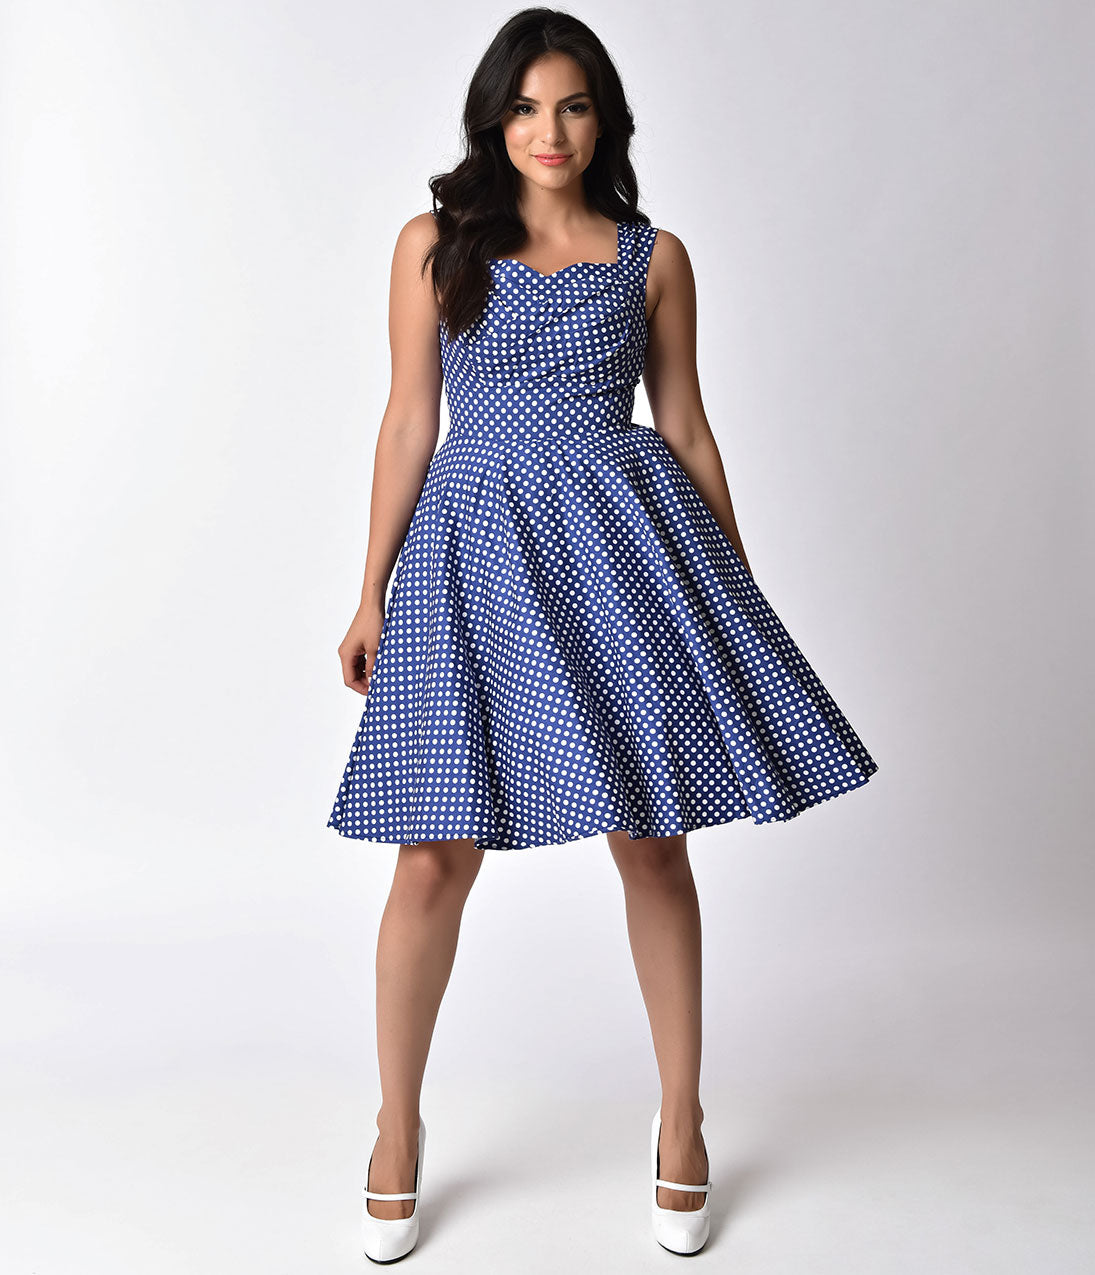 Vintage Polka Dot Dresses – 50s Spotty and Ditsy Prints 1950s Pin-Up Navy  White Polka Dot Sweetheart Swing Dress $74.00 AT vintagedancer.com